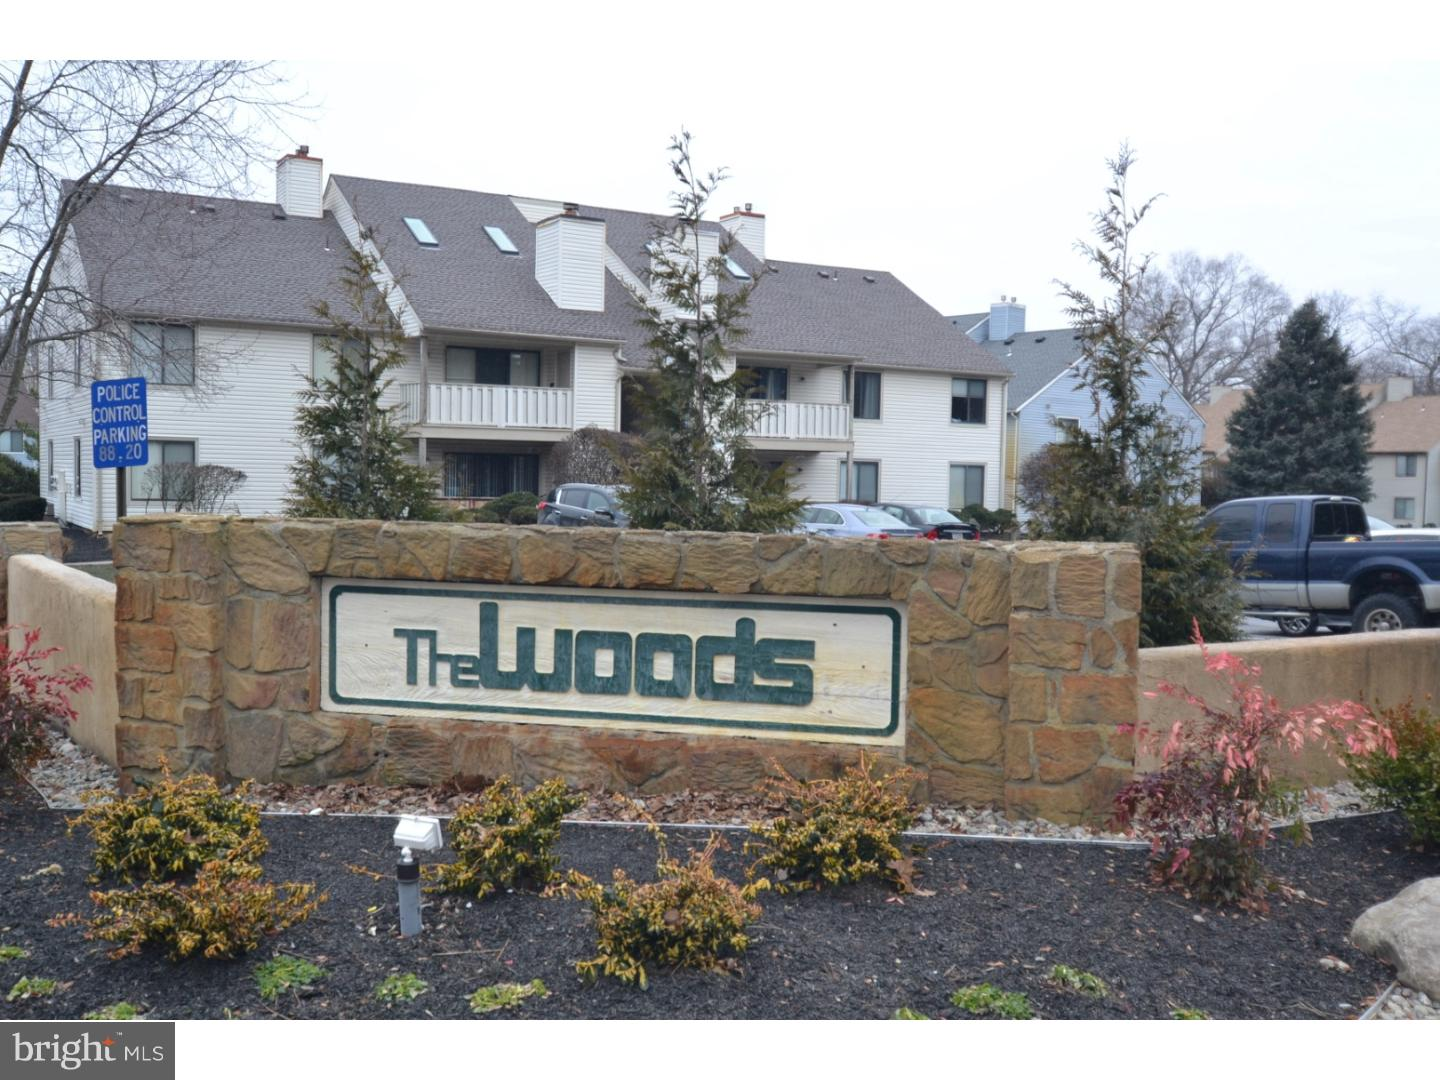 1802 THE WOODS I I, CHERRY HILL, NJ 08003